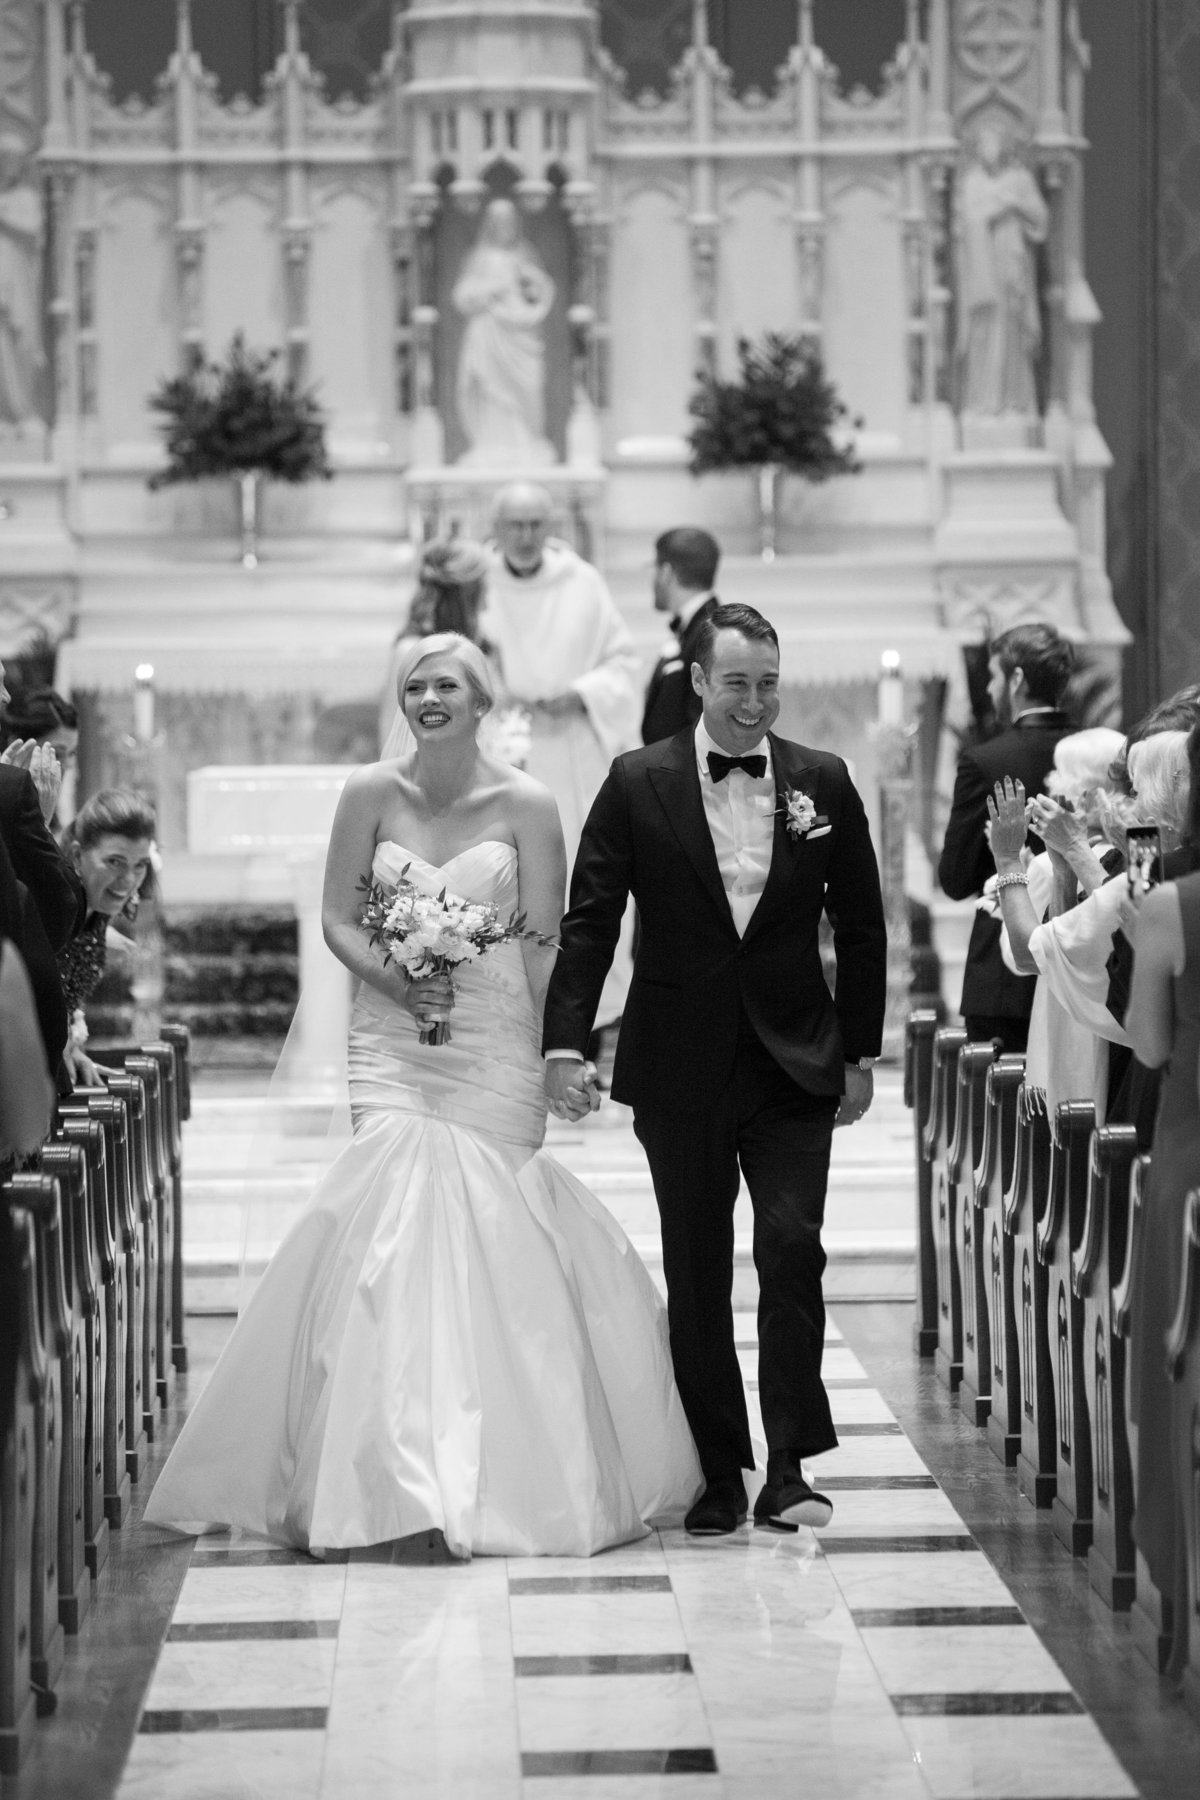 Cottrell Wedding - Natalie Probst Photography269